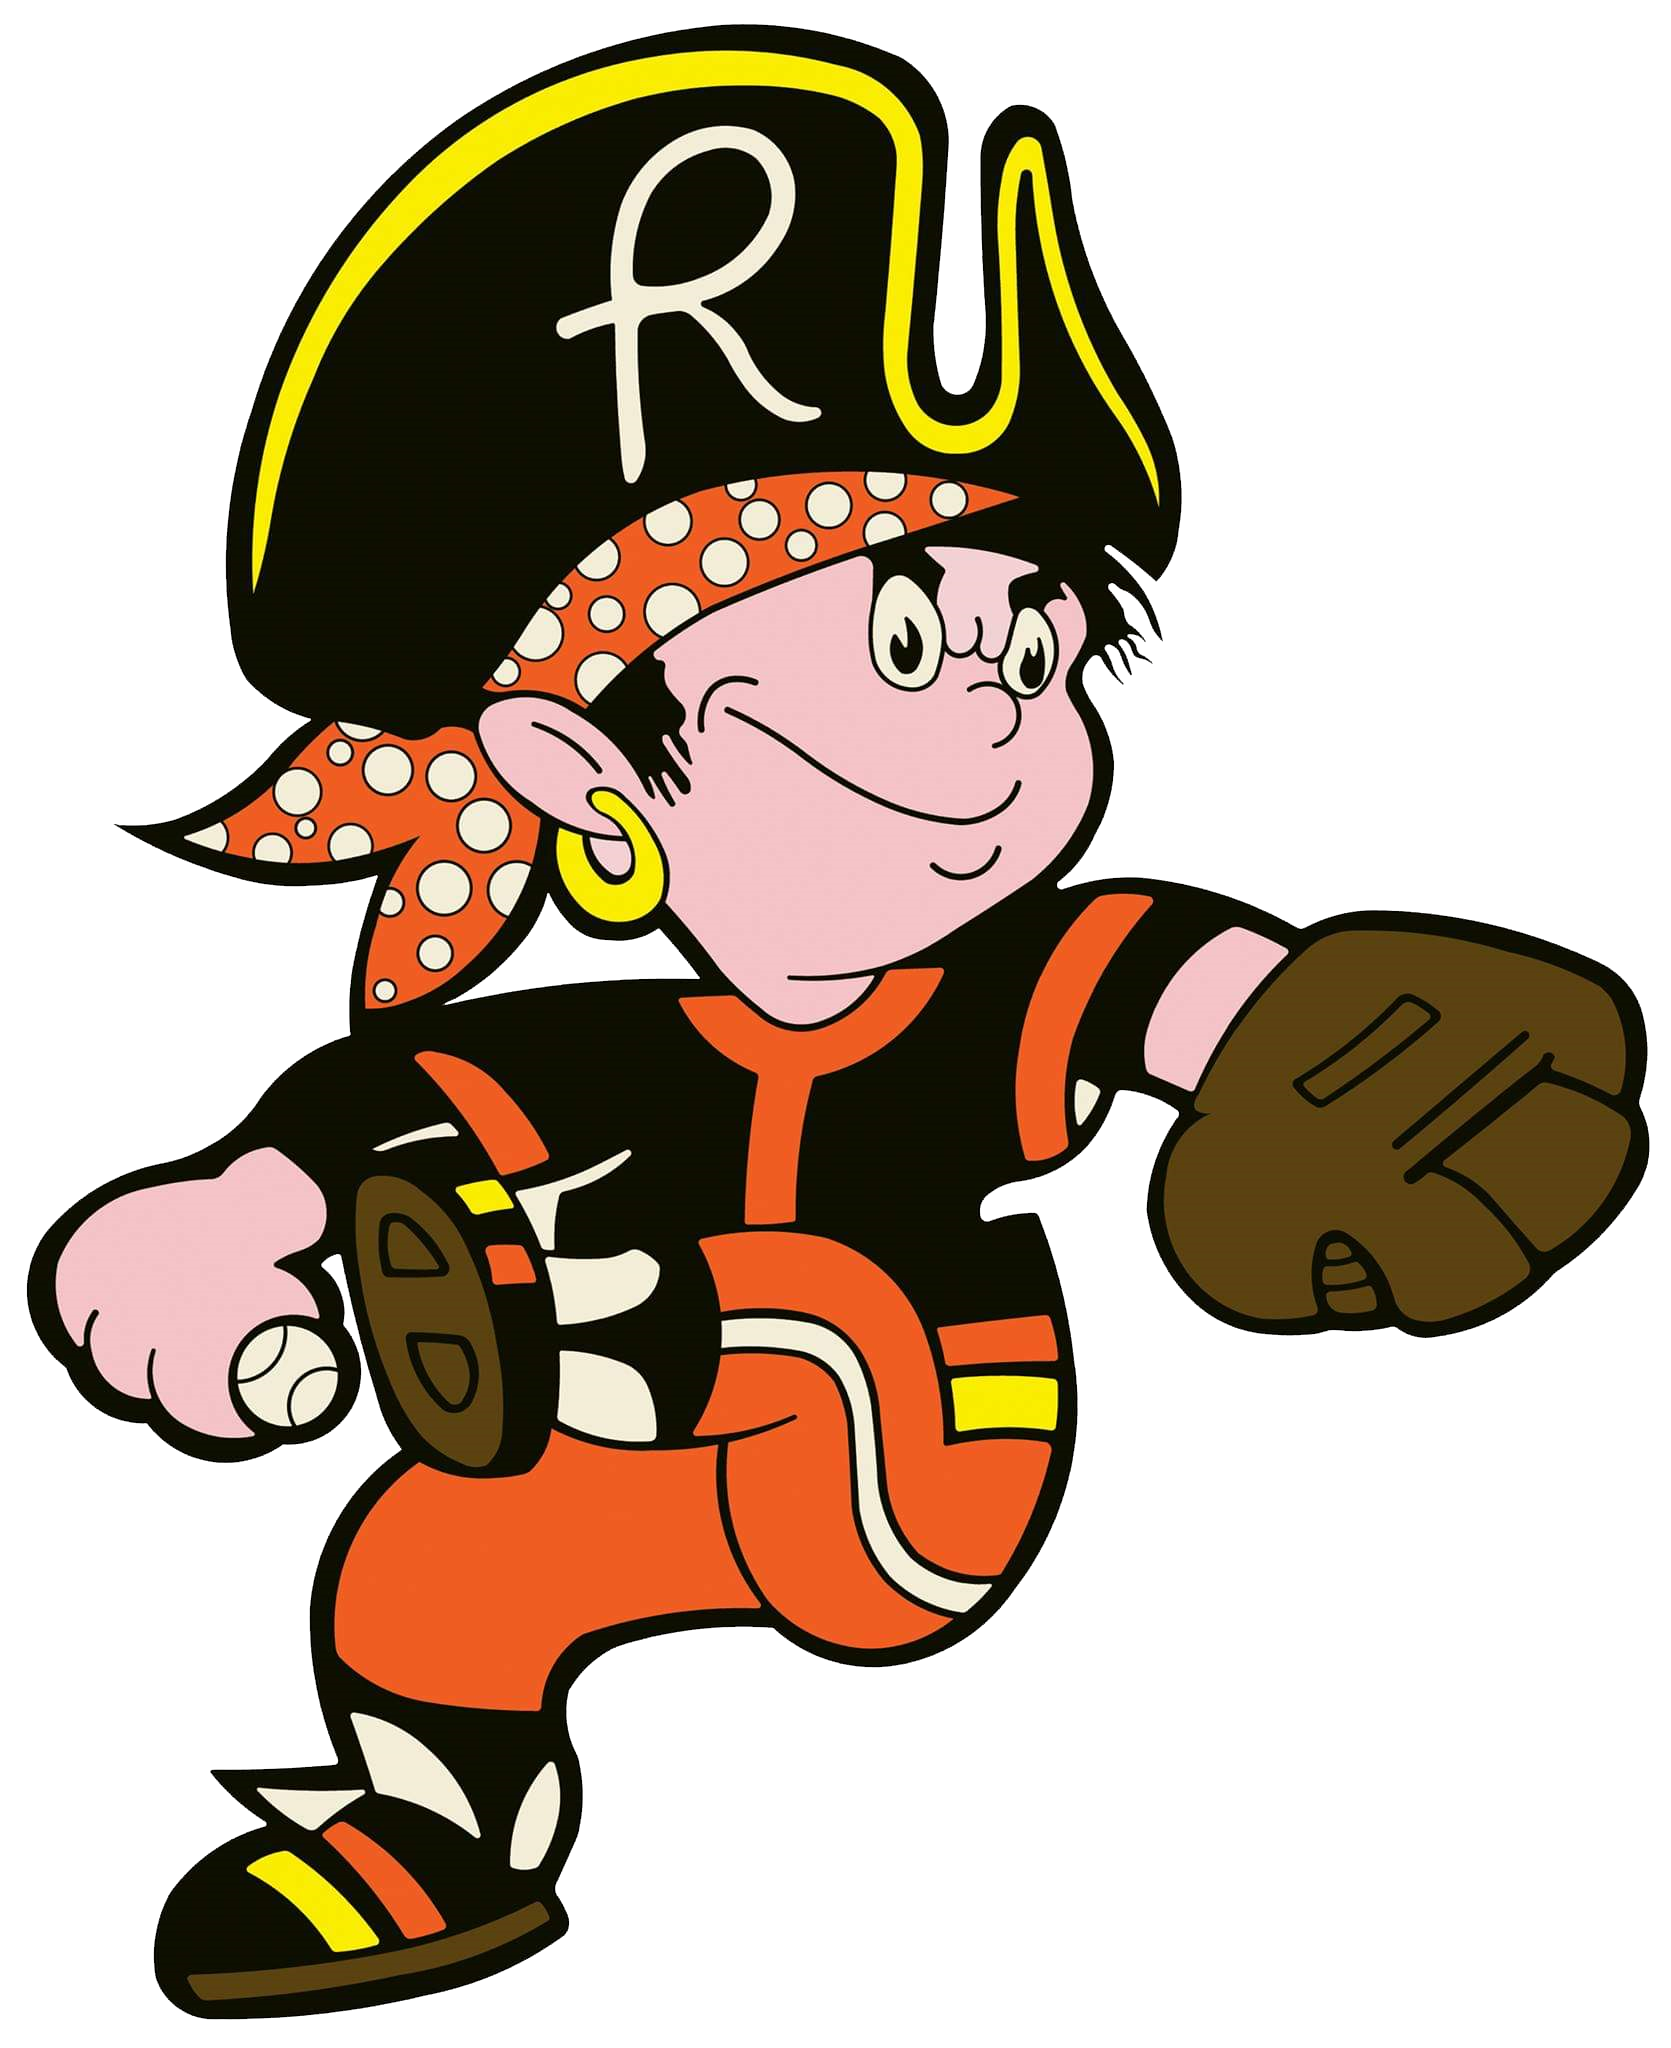 Rimini Baseball Club - Logo - Pirati.png